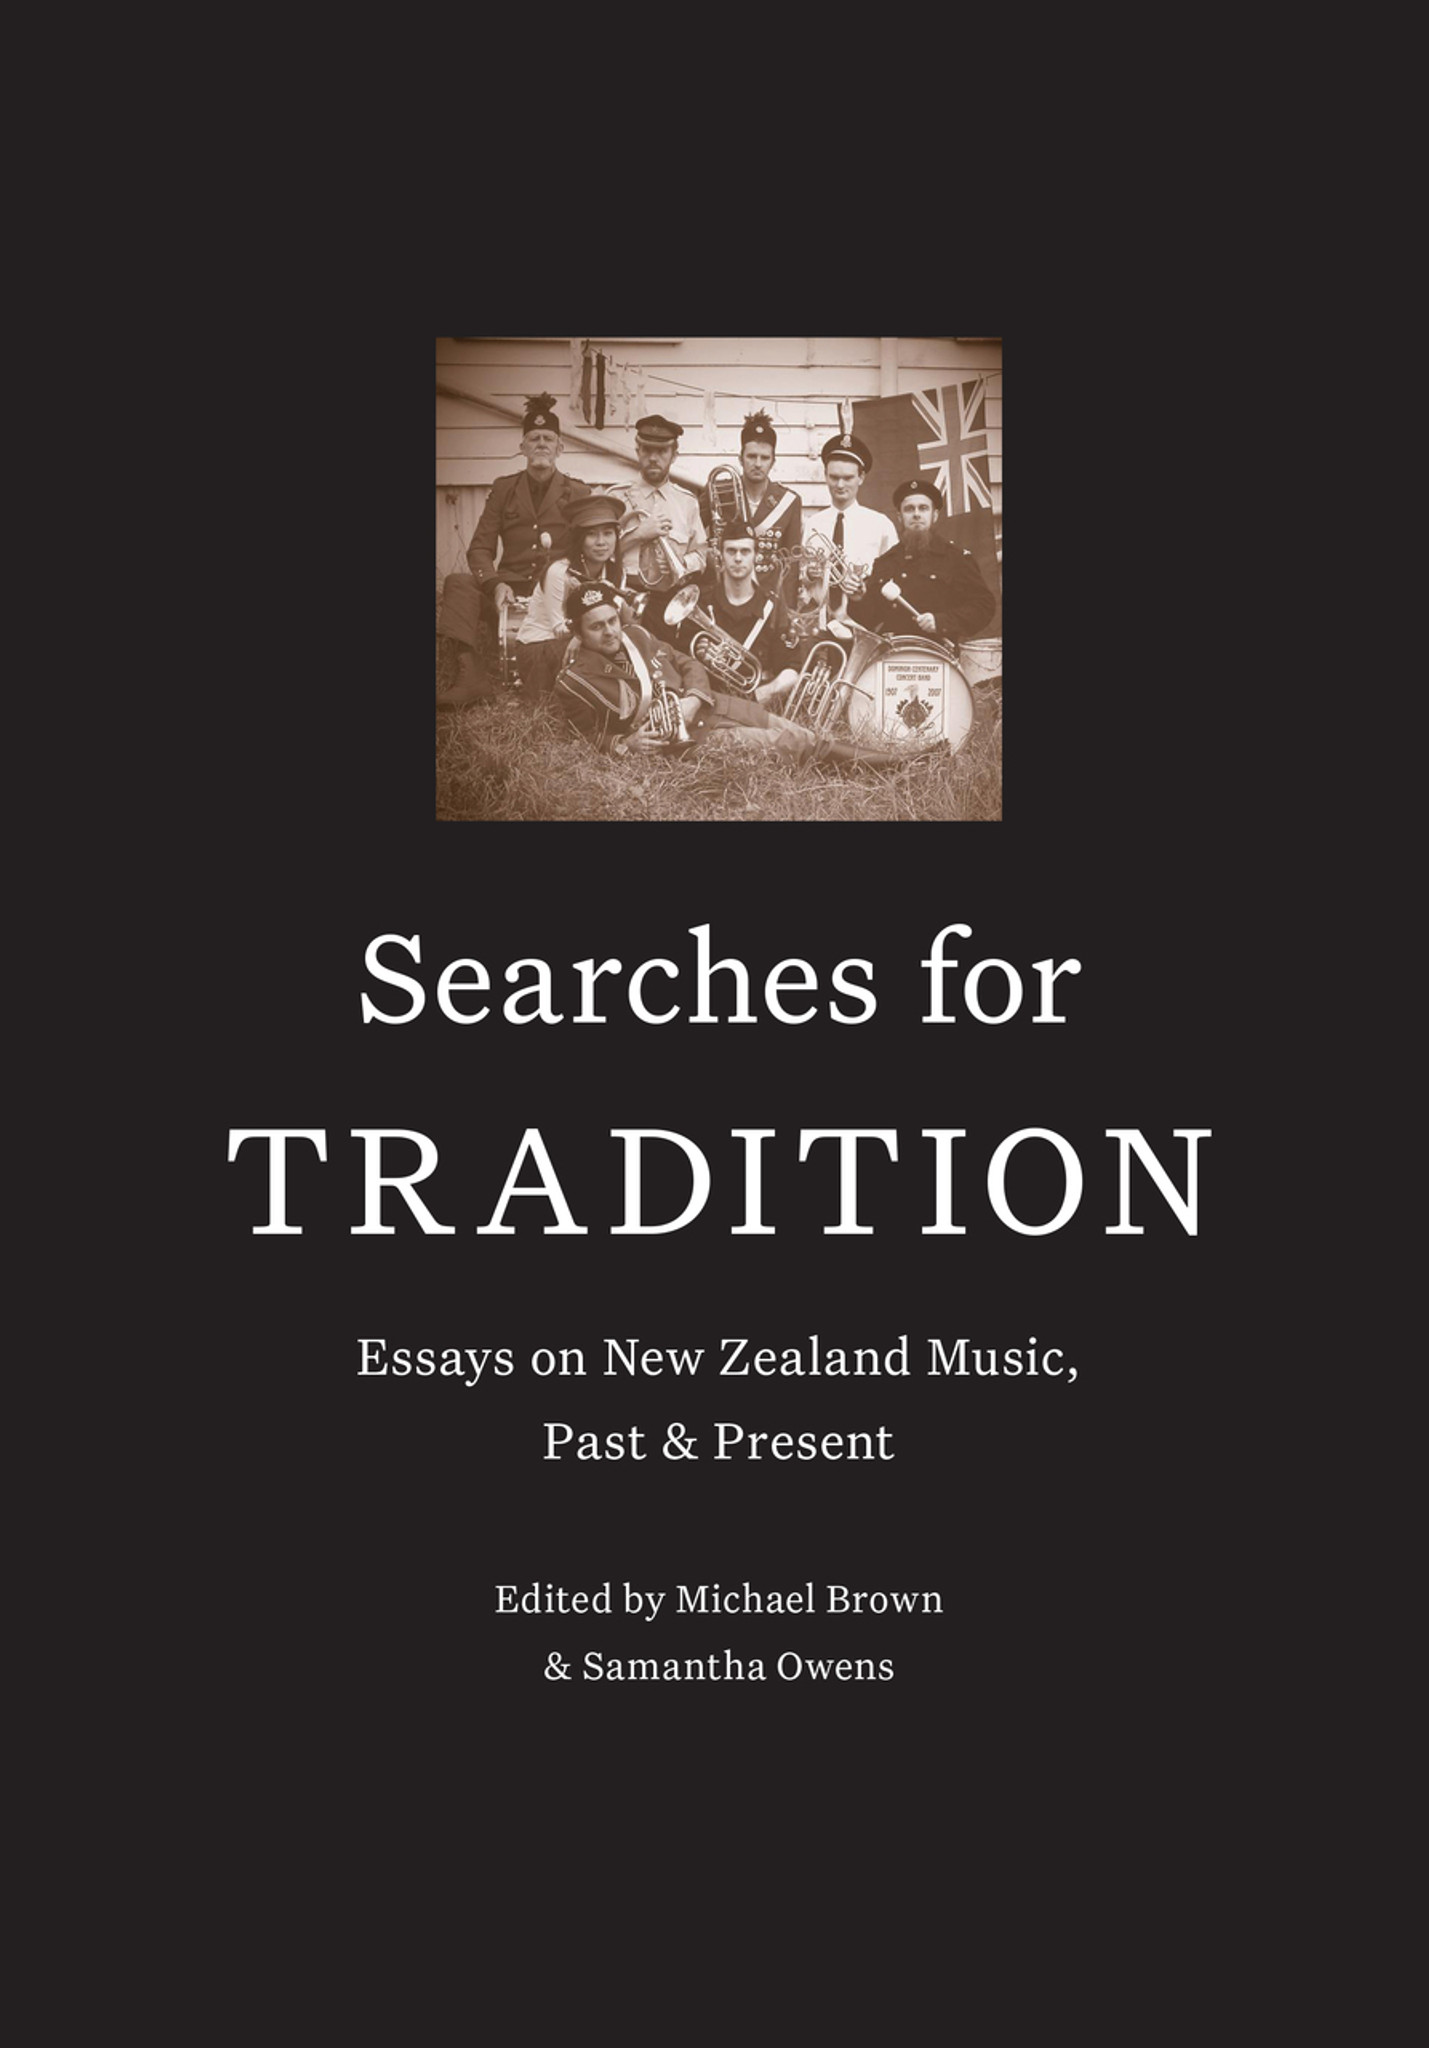 searches for tradition essays on music past and  searches for tradition essays on music past and present